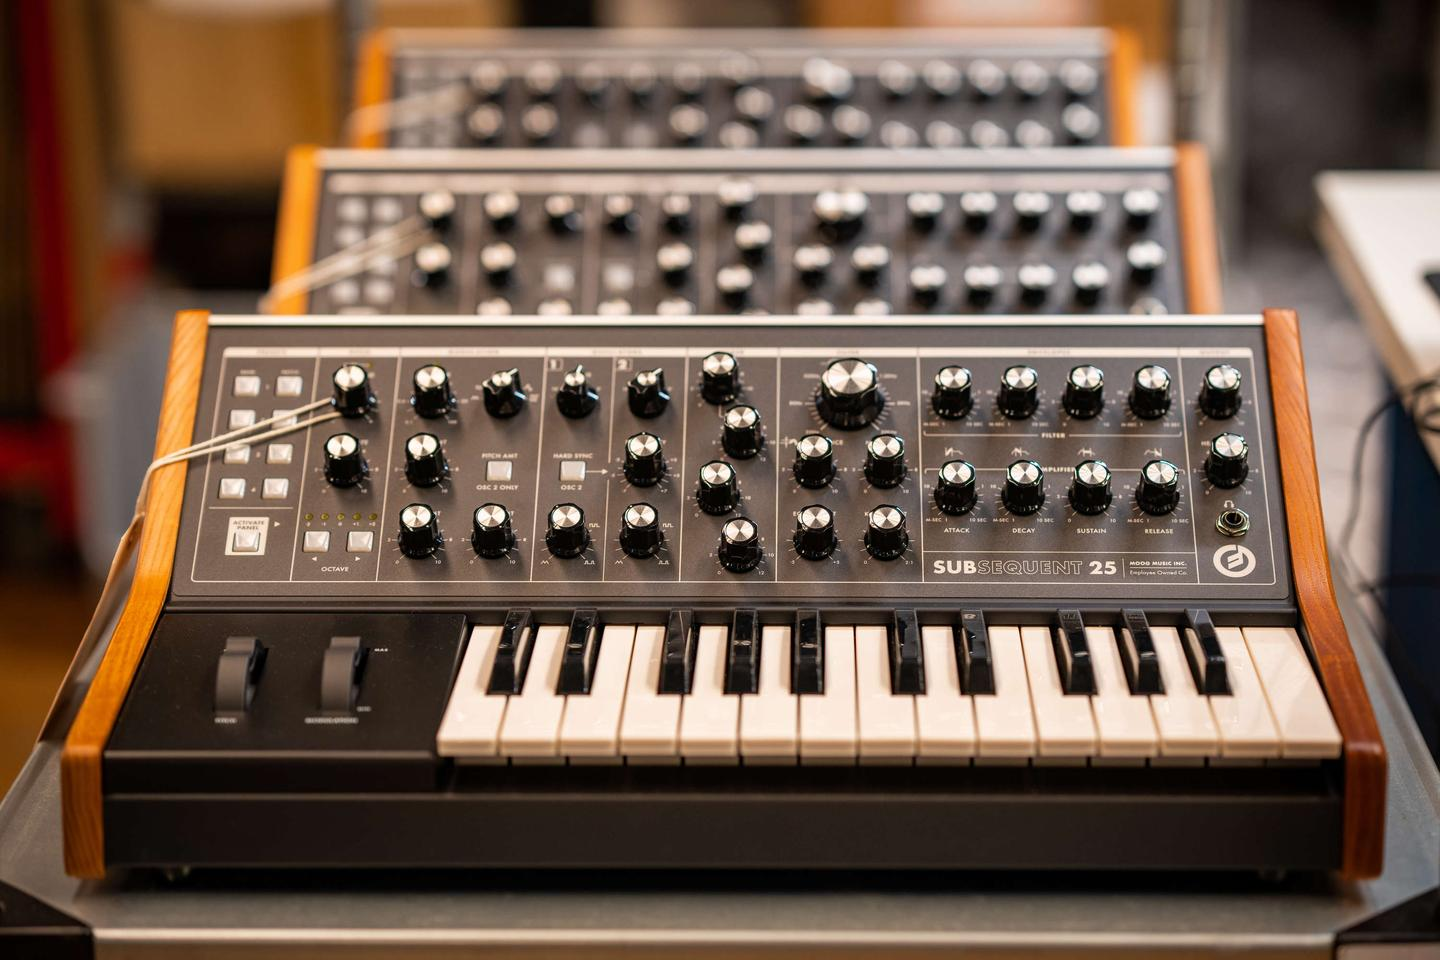 The Subsequent 25 is based on the Sub Phatty sound engine and is Moog's most compact keyboard synth to date